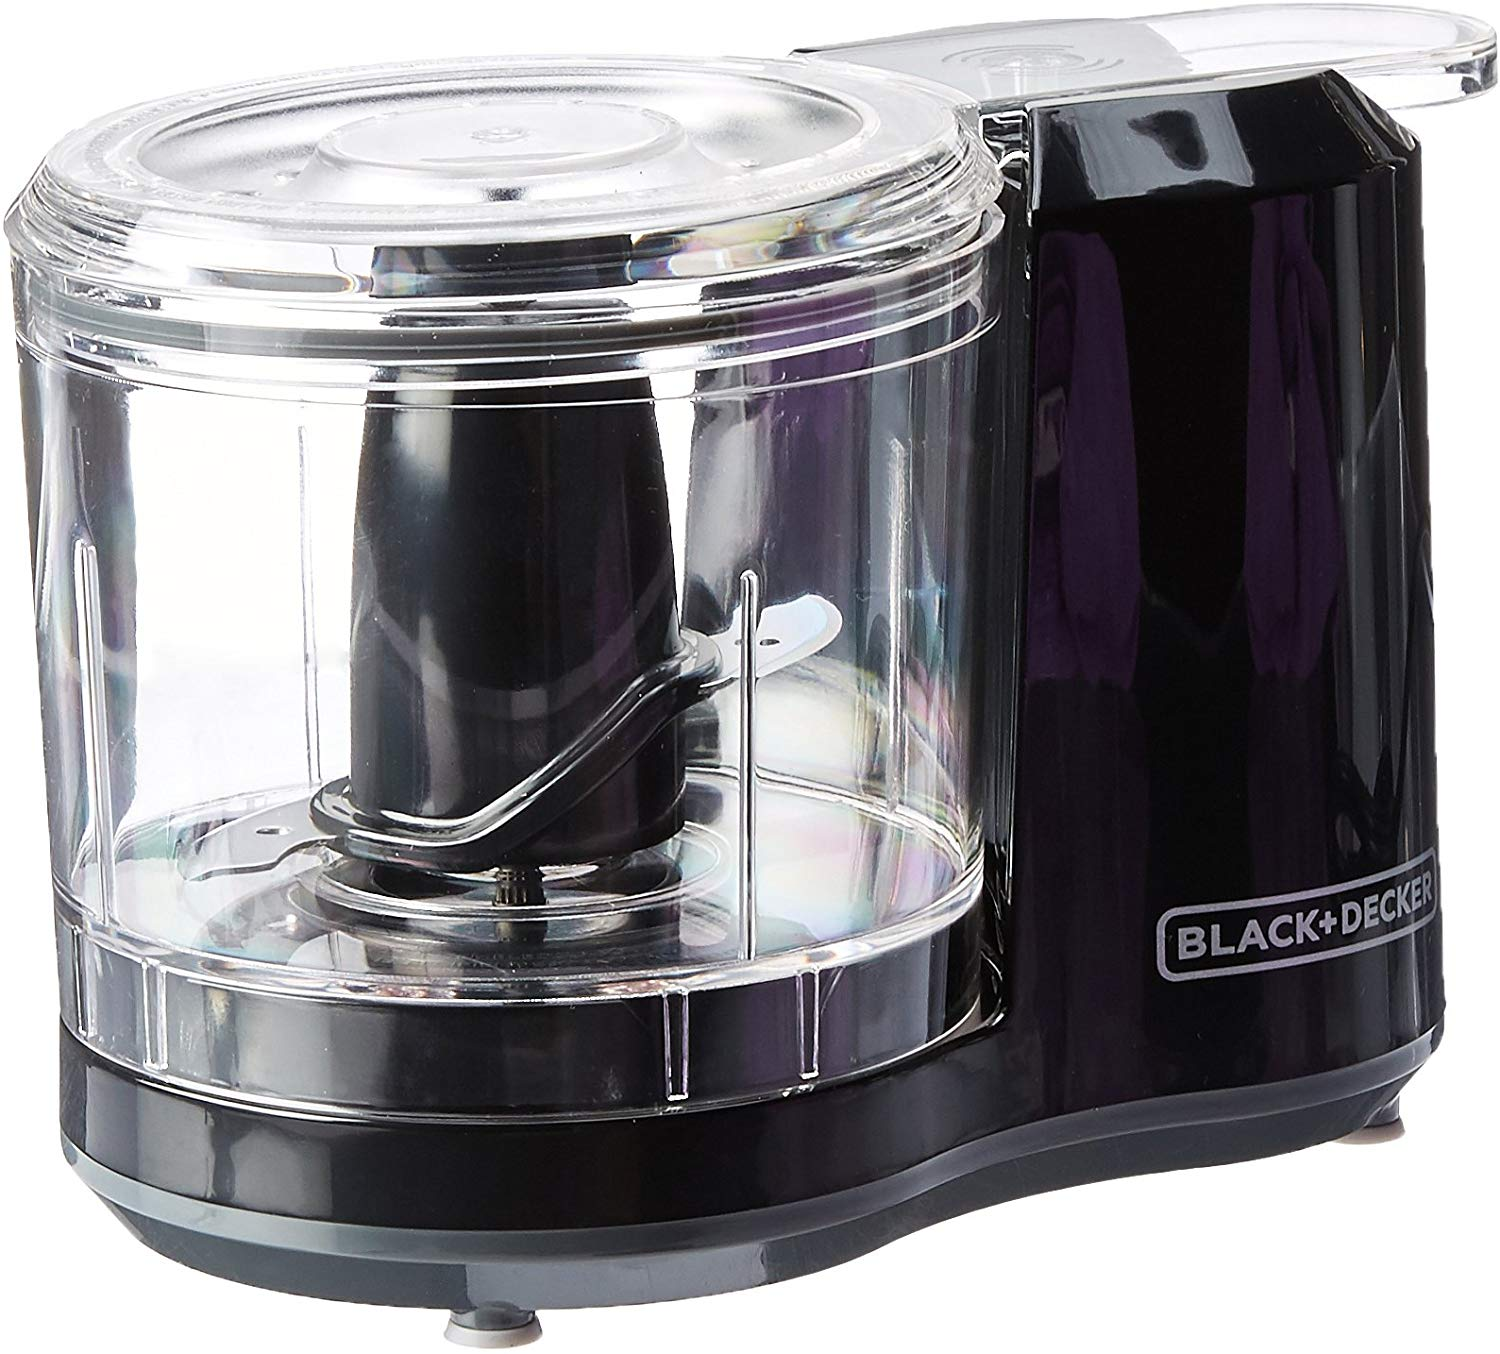 BLACK+DECKER electric chopper